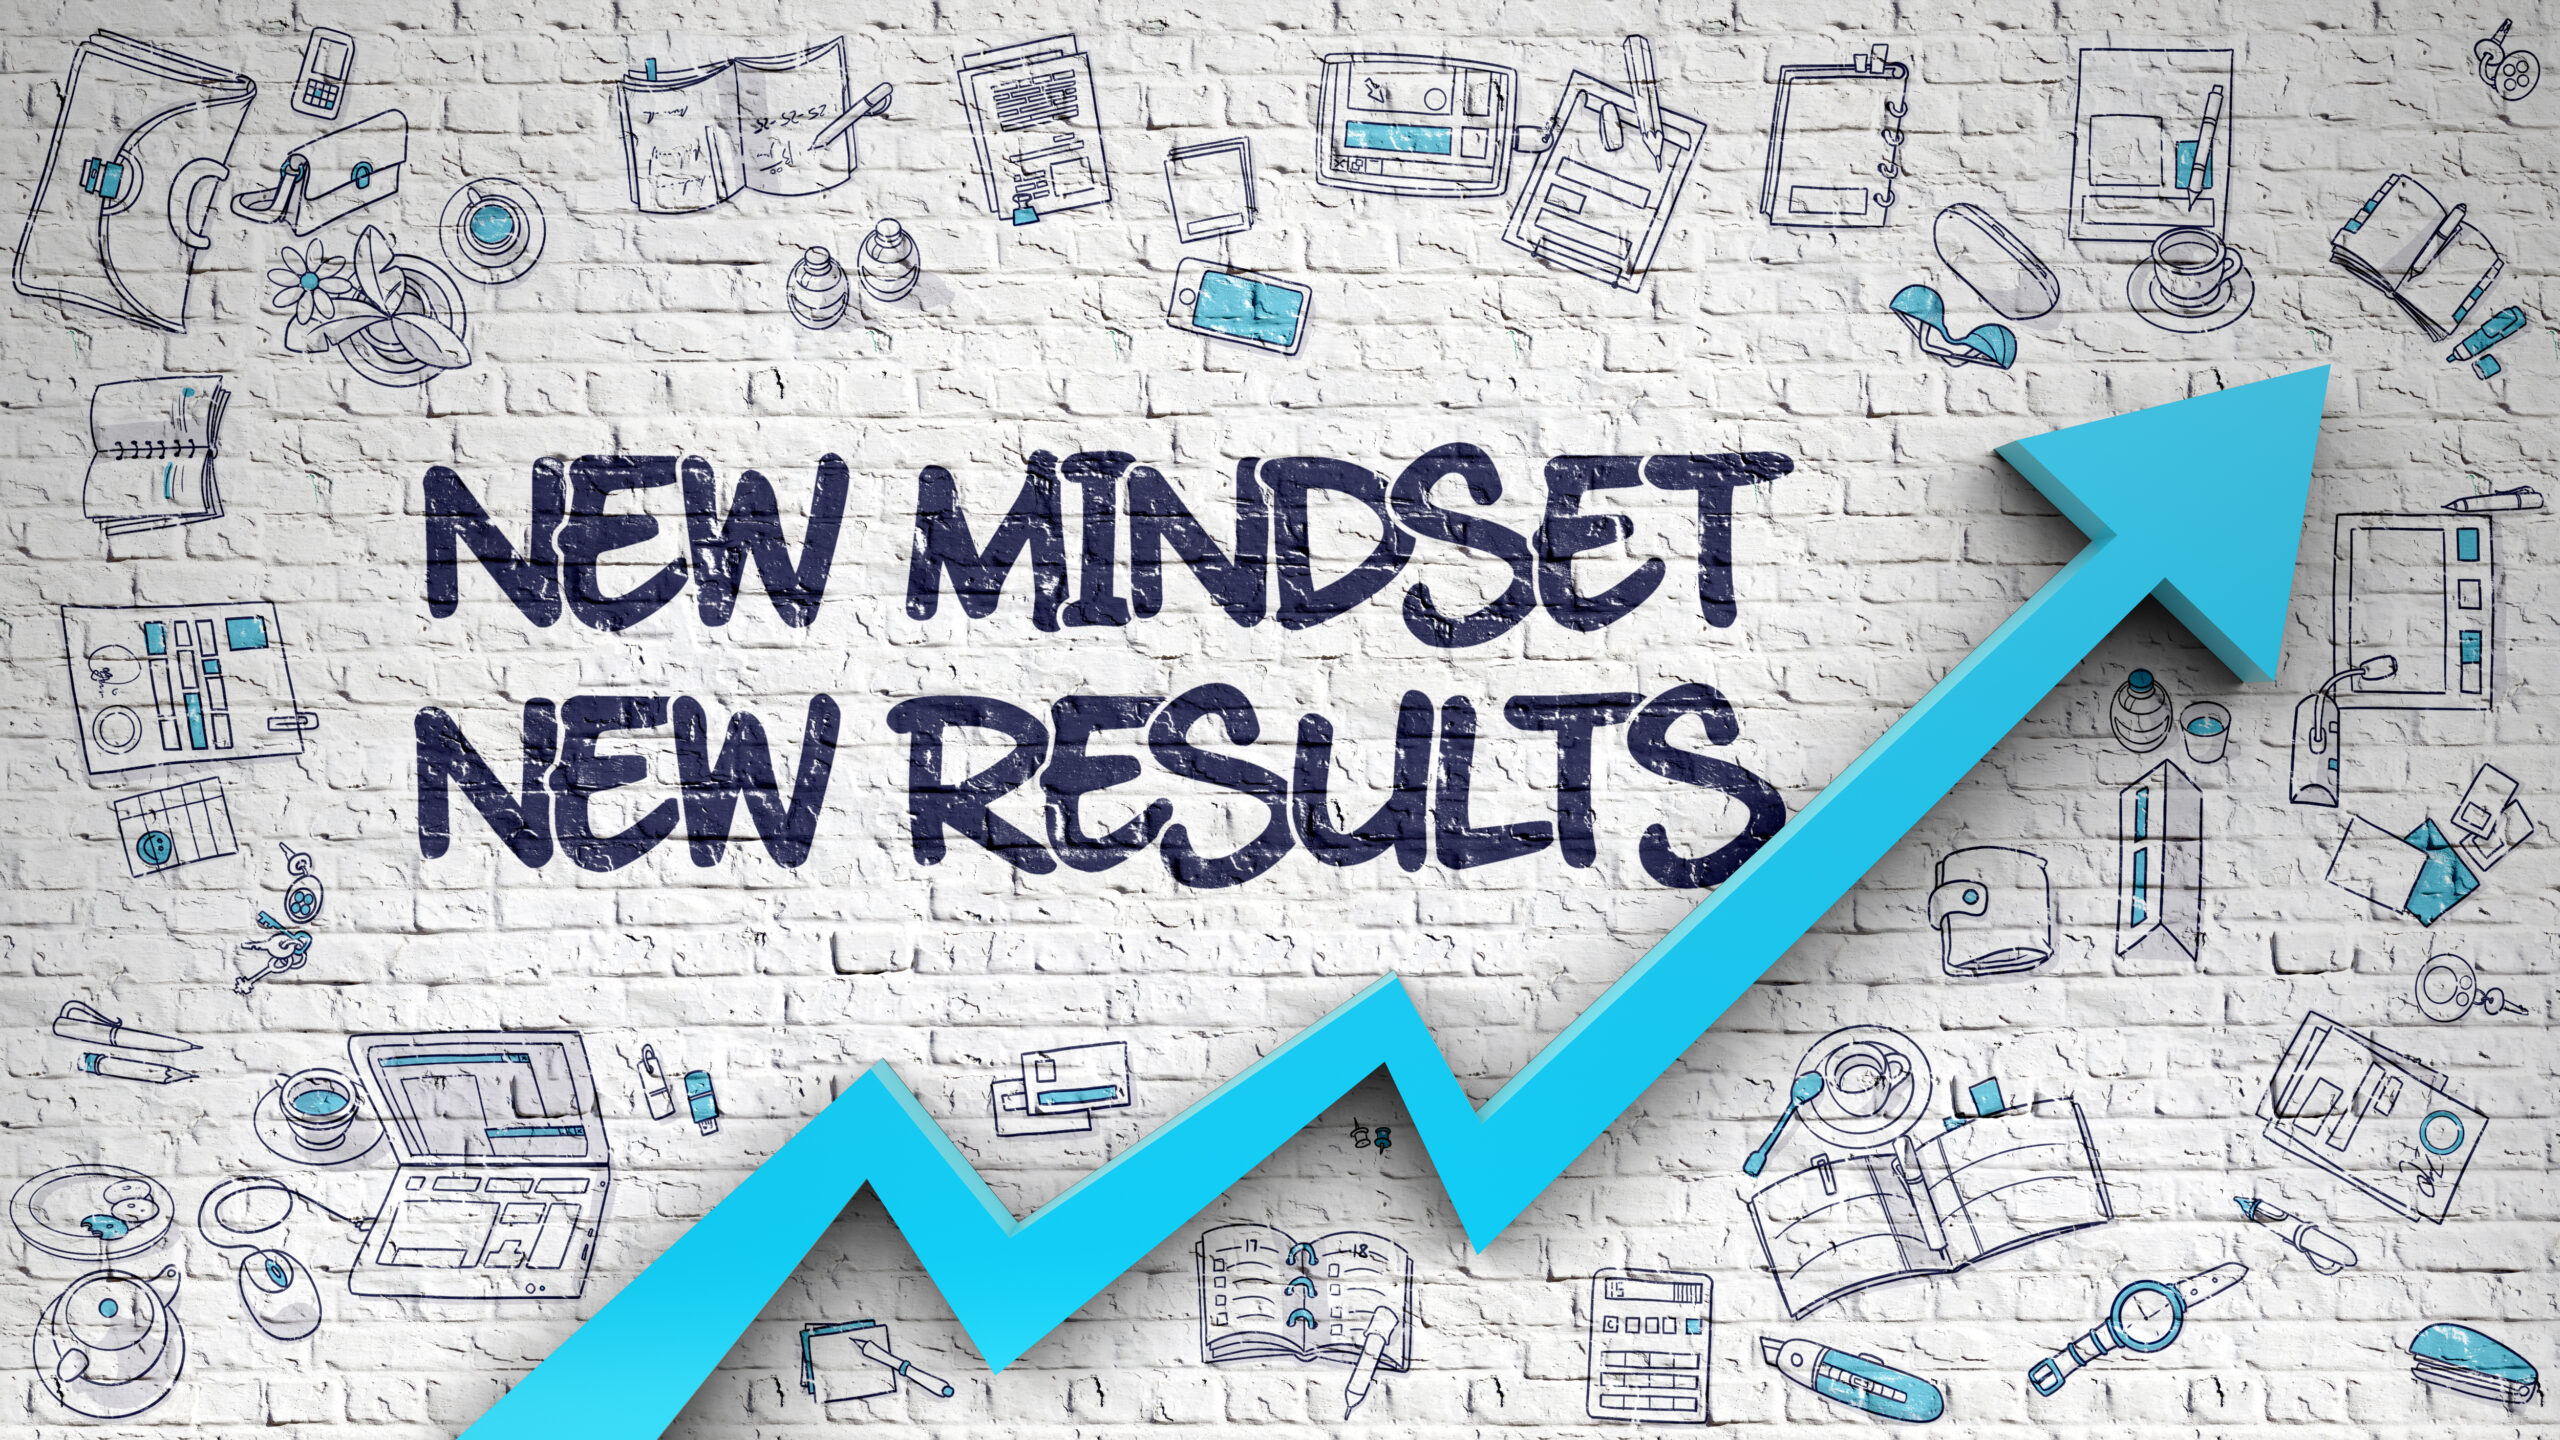 New Mindset. New Results.